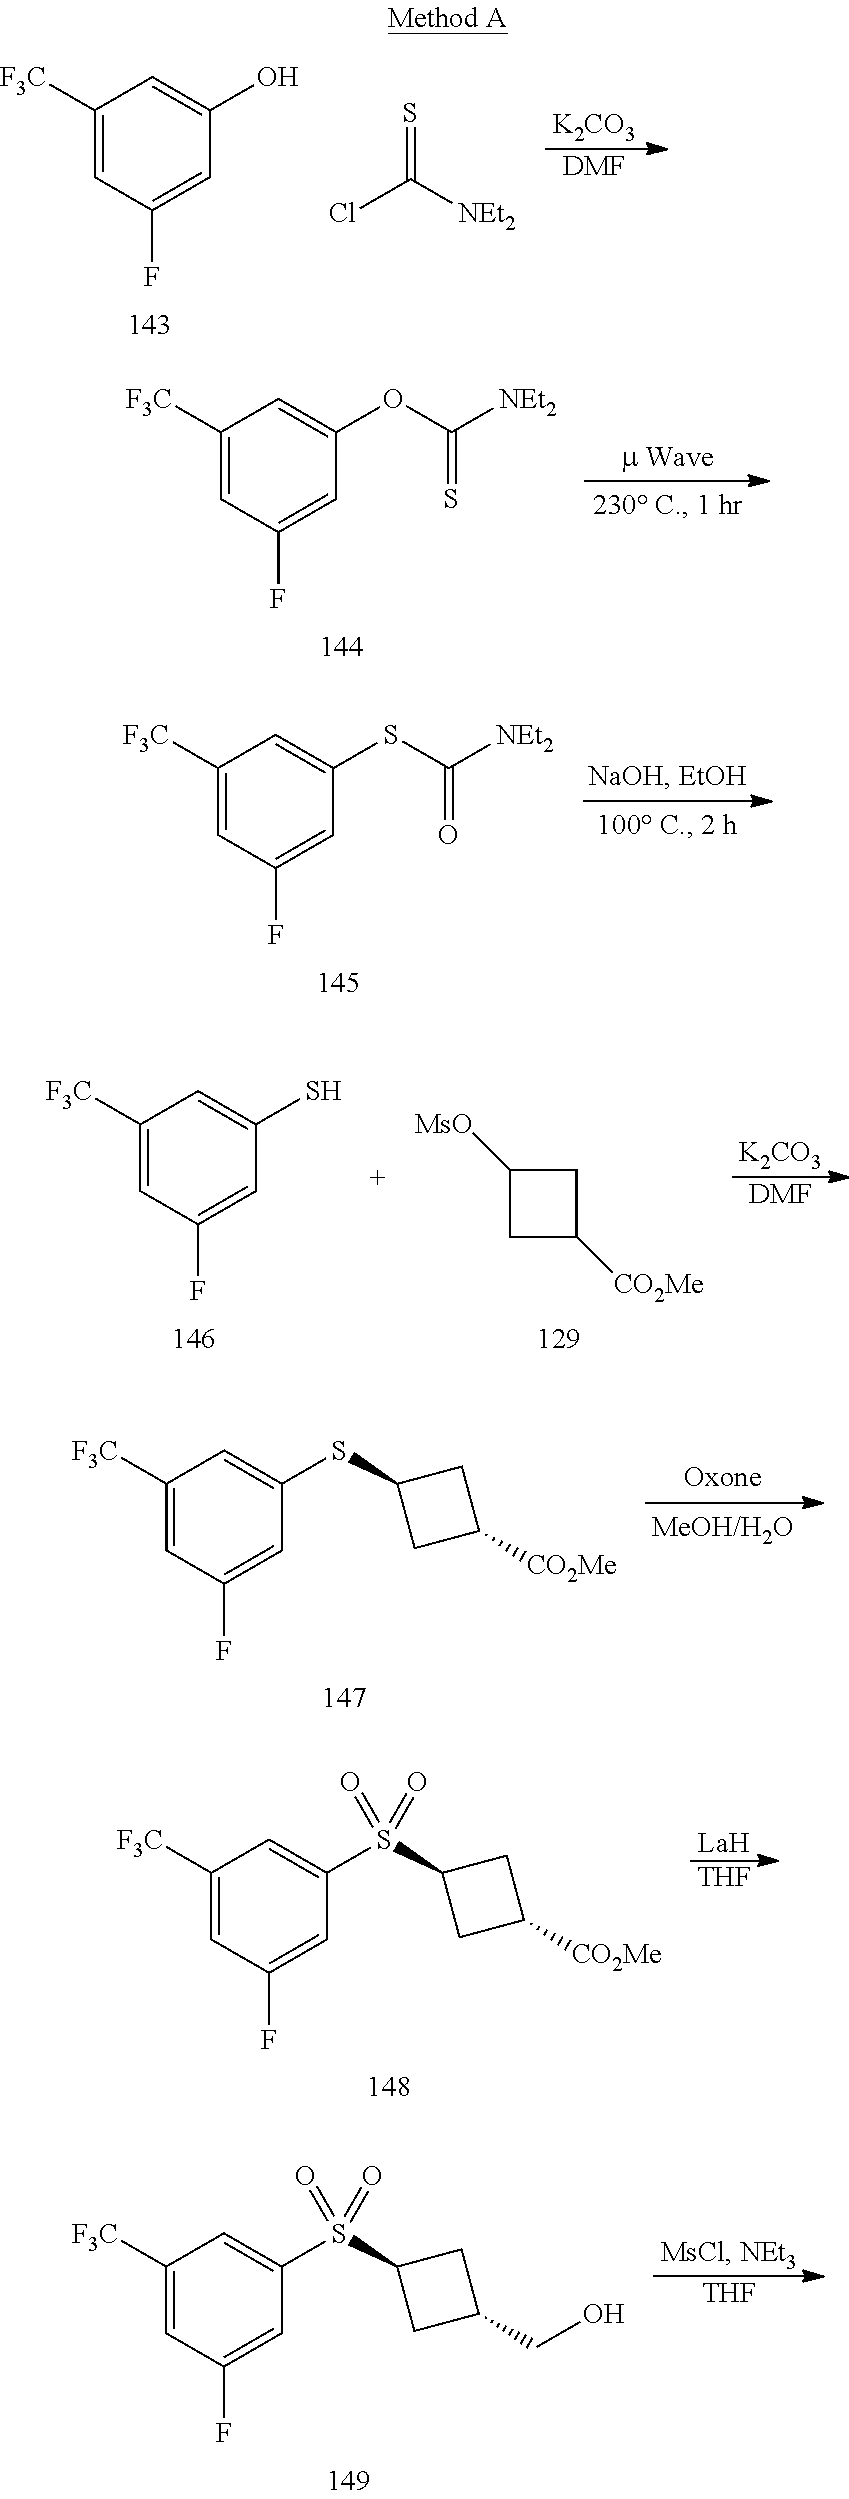 Us20120245137a1 Aryl Sulphone Derivatives As Calcium Channel Seal Skeleton Labeled See Diagram 9230 Figure 20120927 C00062